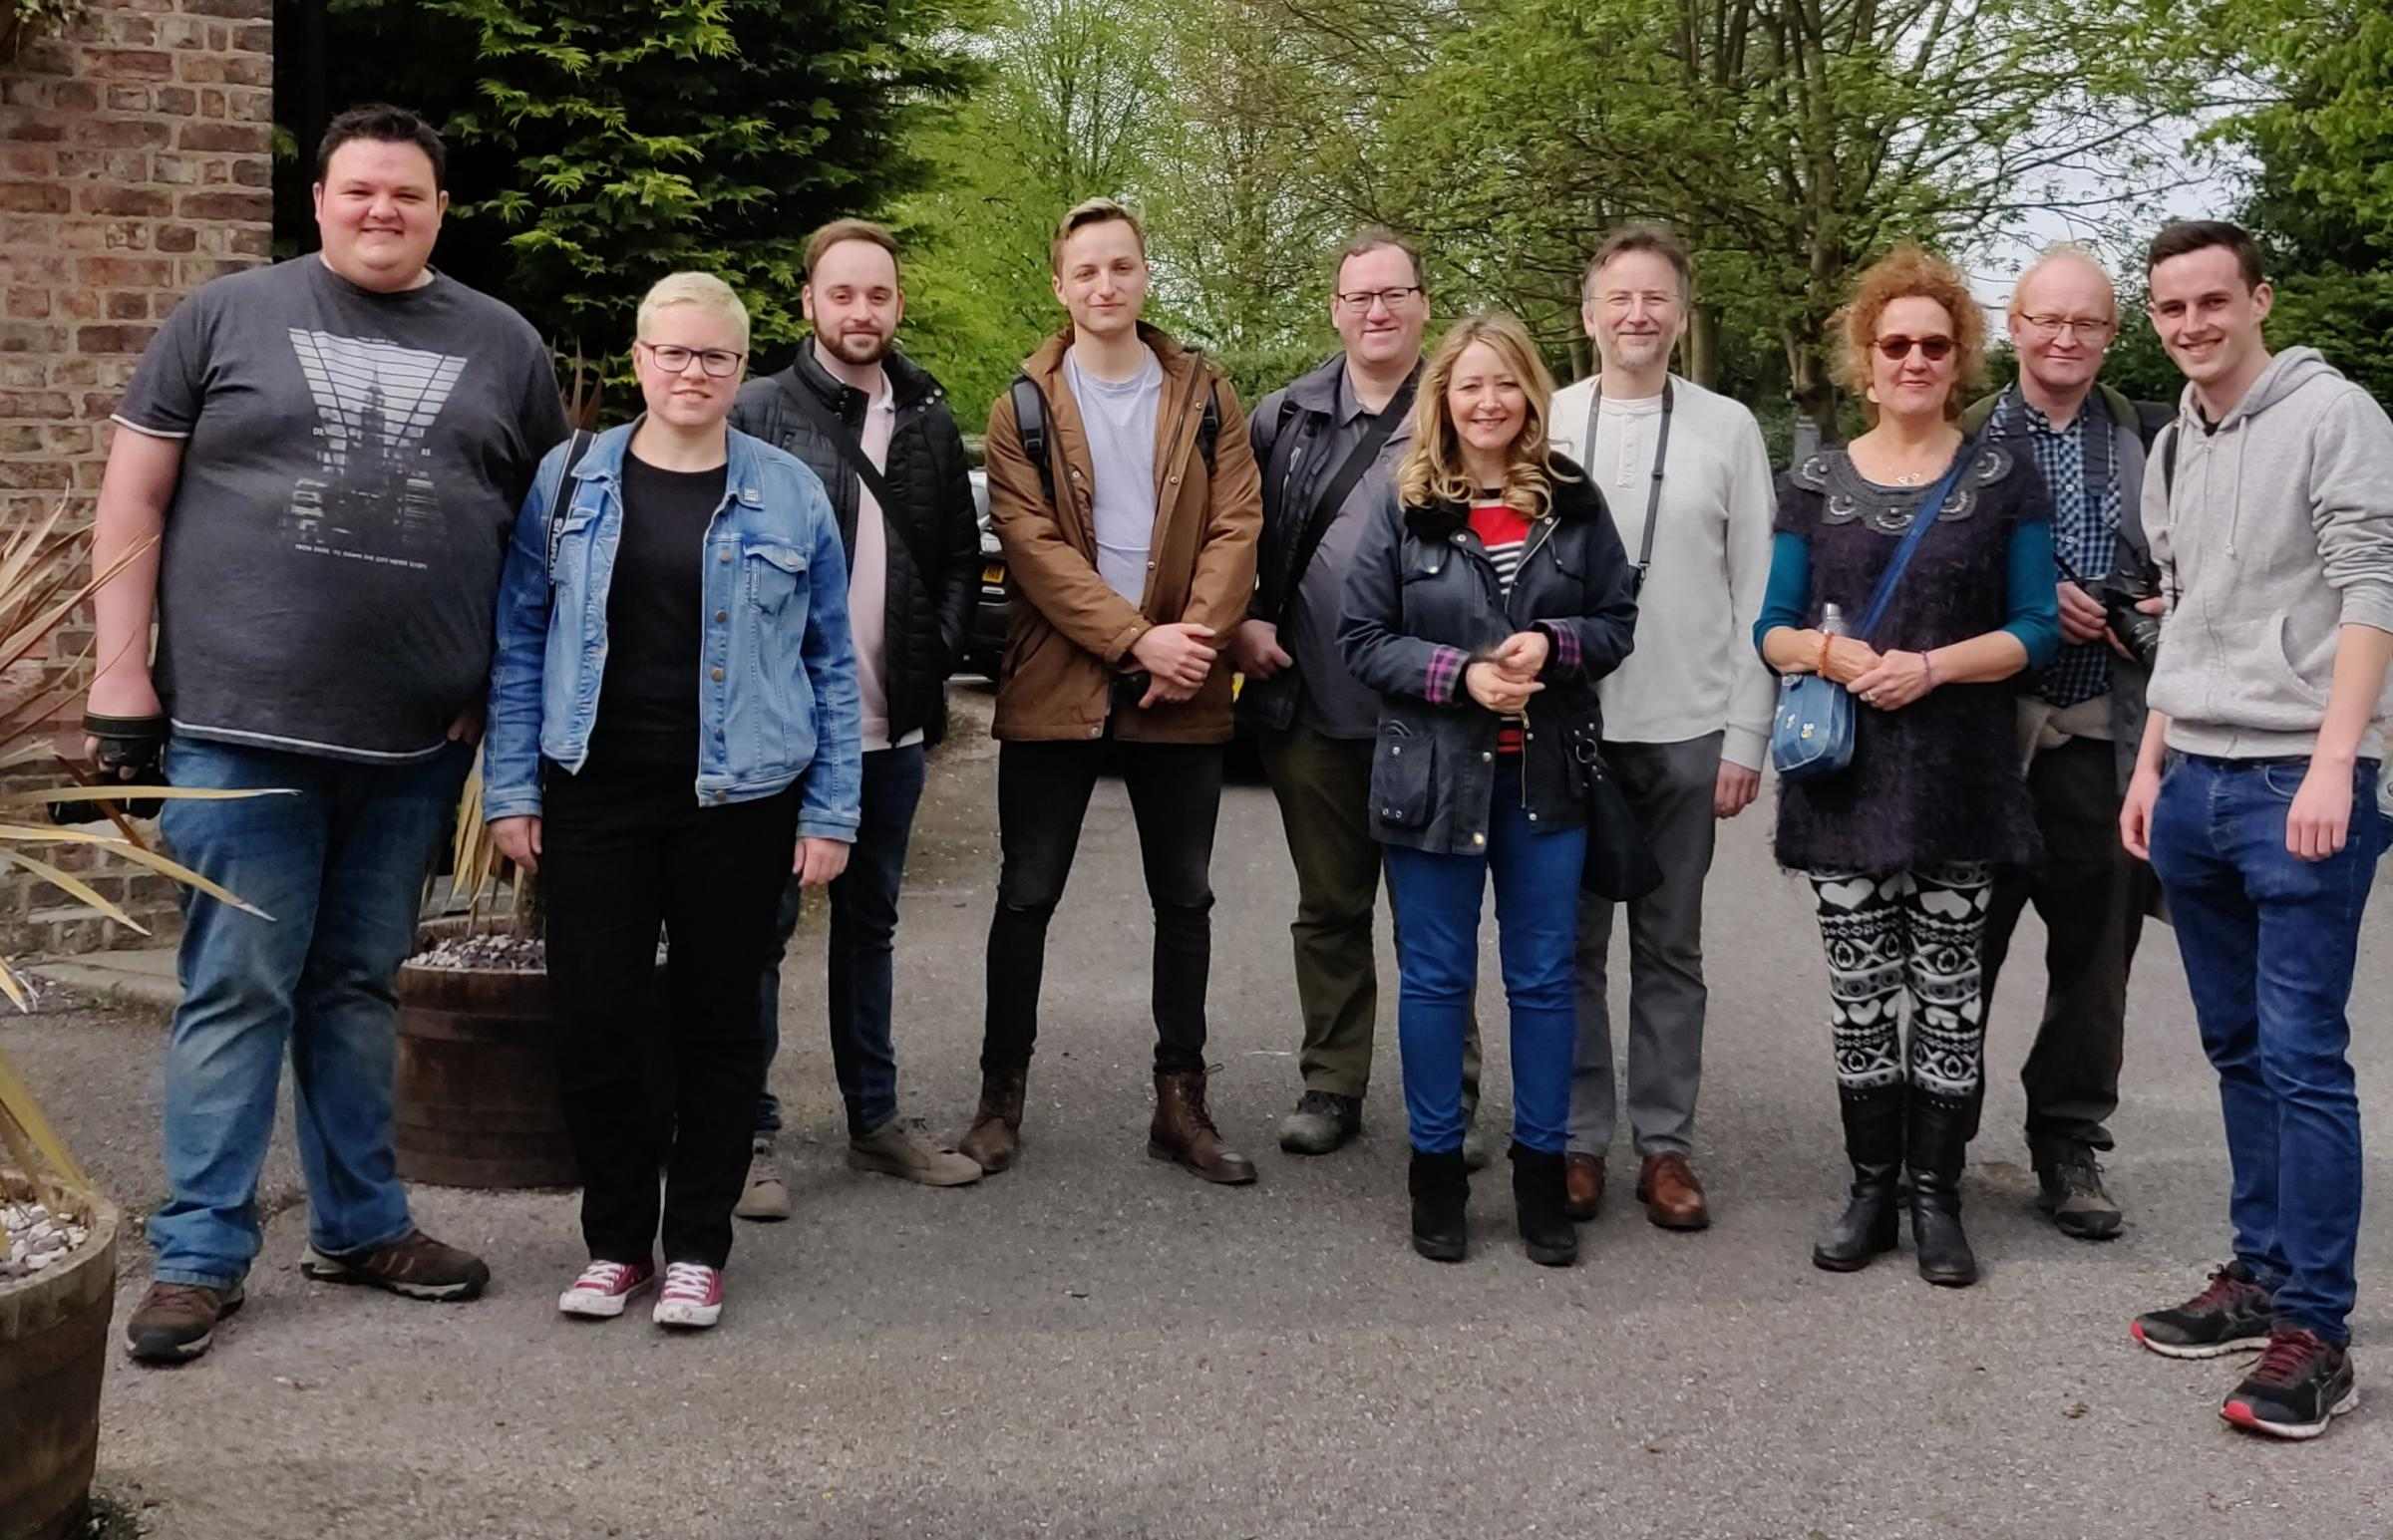 Warrington Photo Walk is on the look out for new members